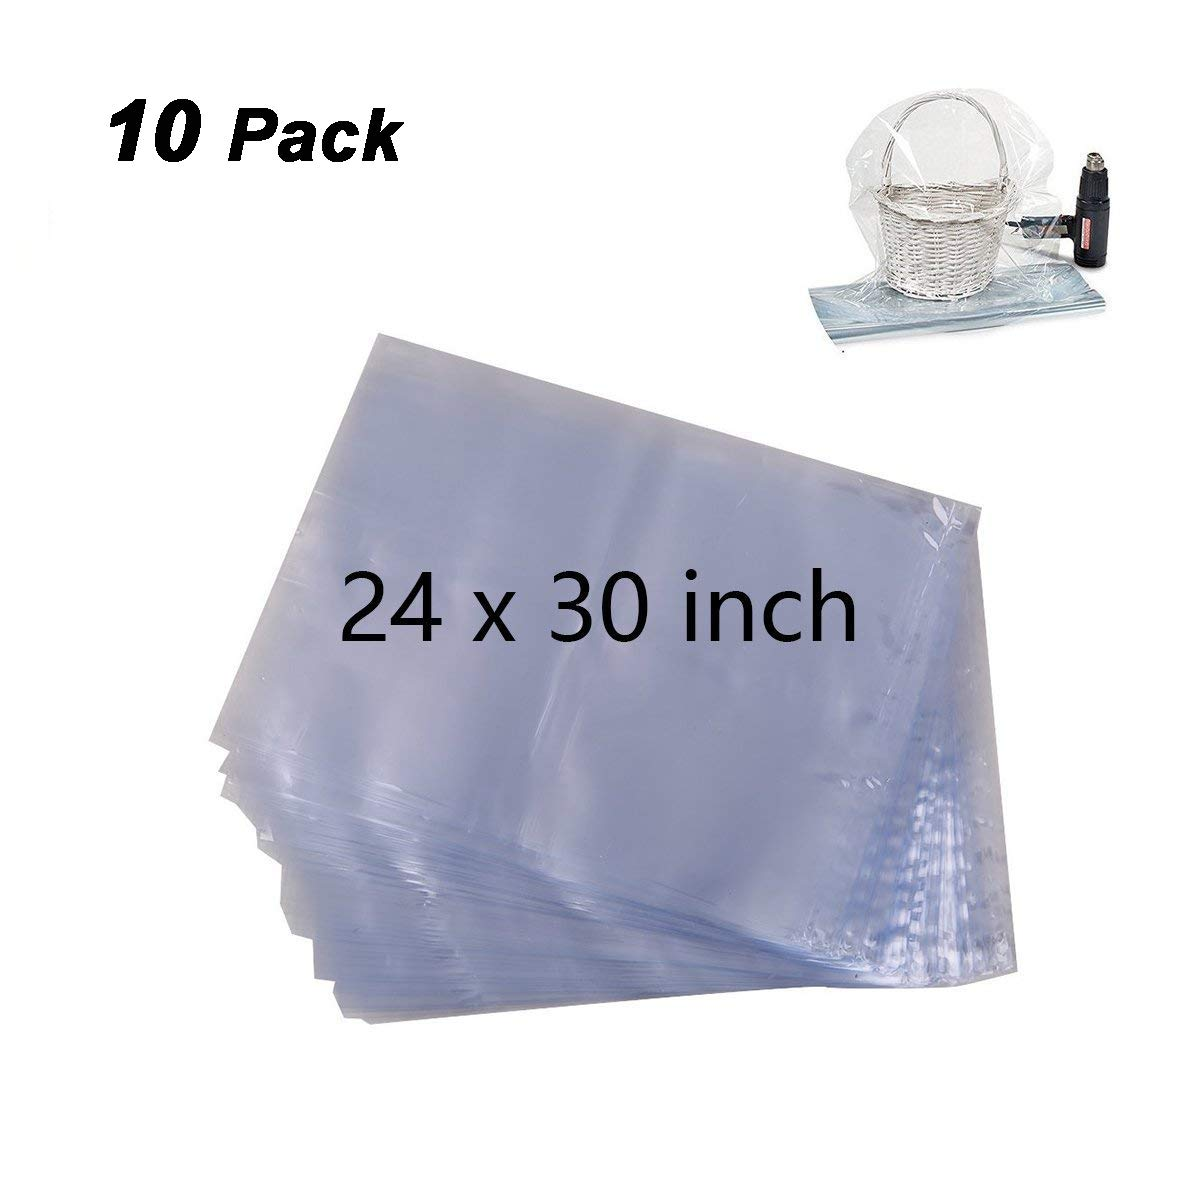 Morepack Clear Cello/Cellophane Basket Bags for Gift Wrap, 24x30inch (10)